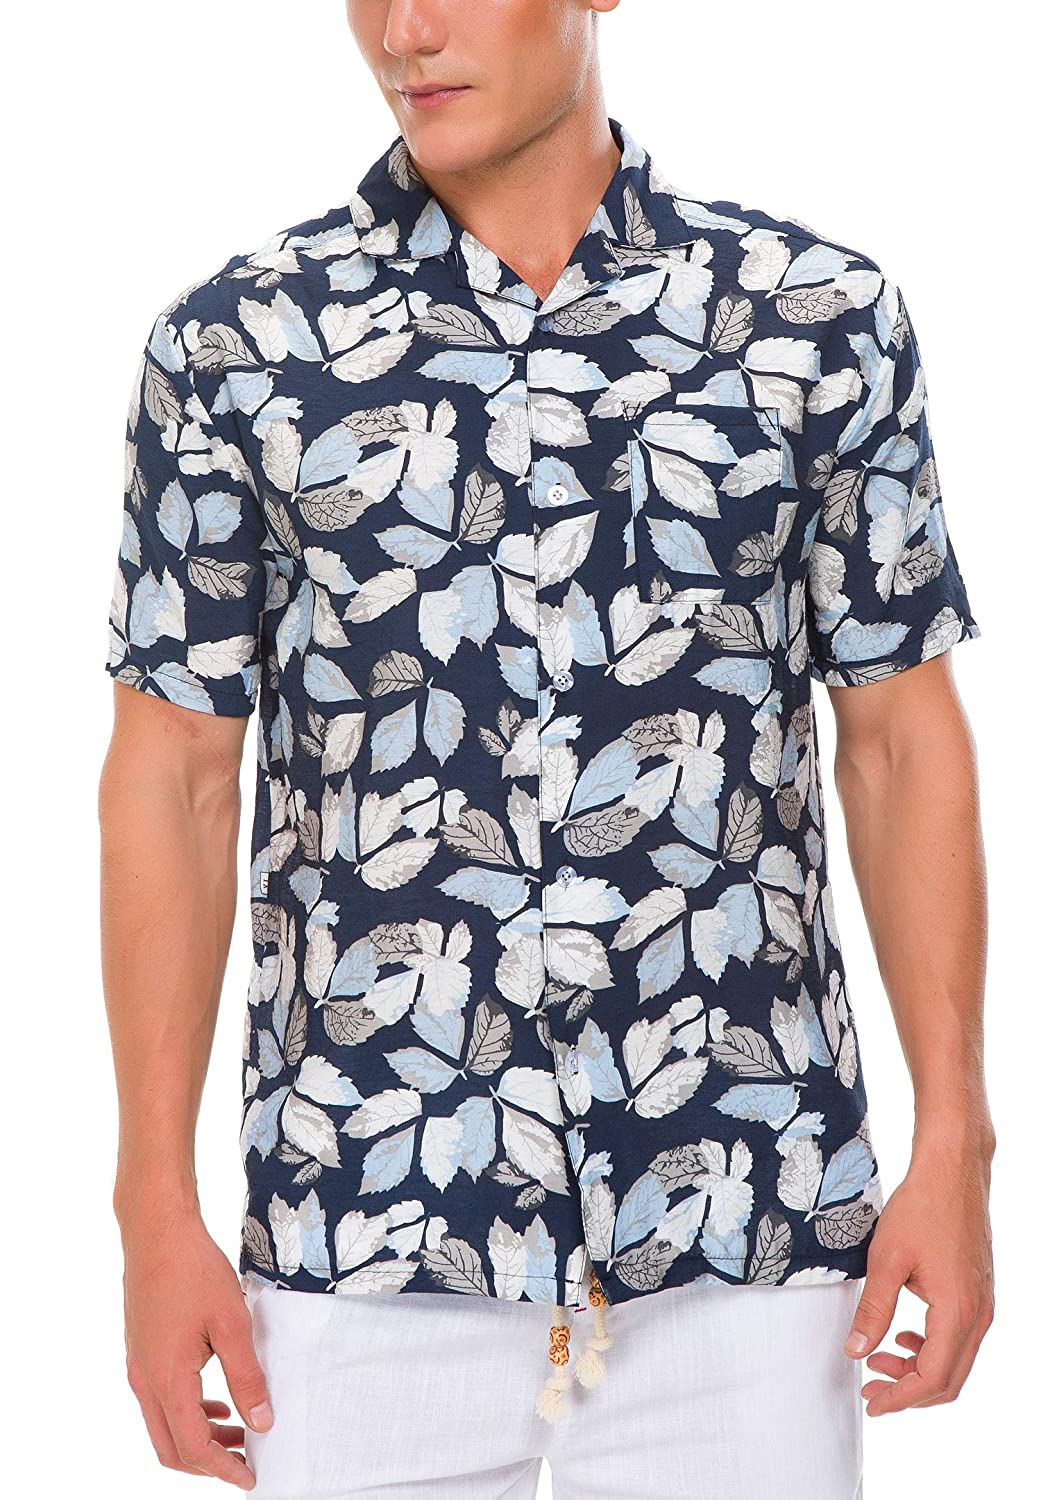 121329c115a Janmid Men's Flower Casual Button Down Short Sleeve Shirt at Amazon Men's  Clothing store